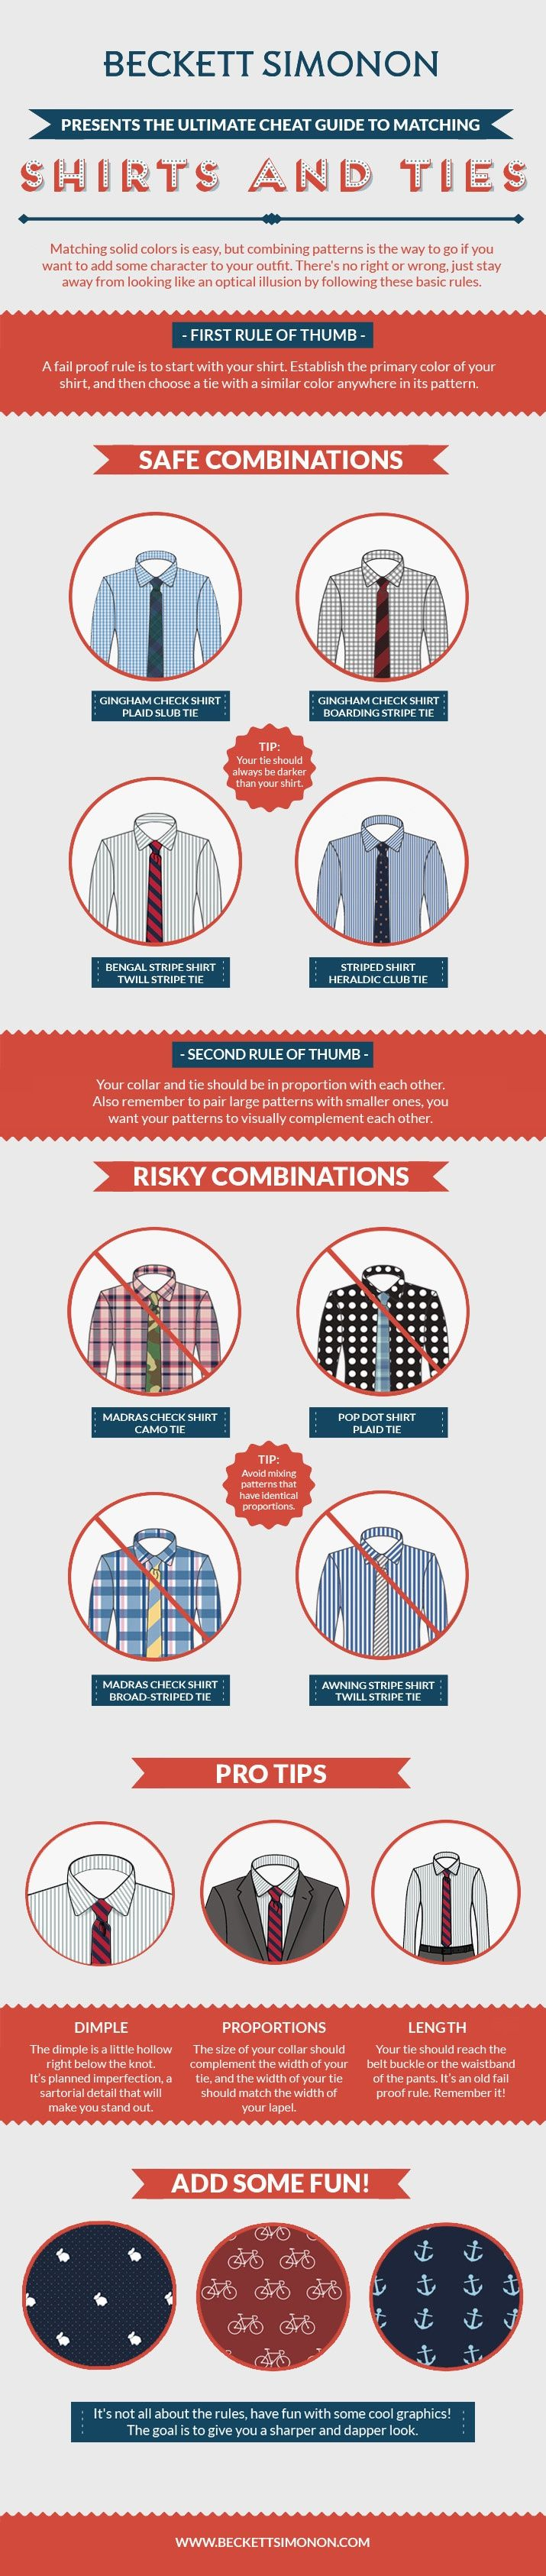 #Brotip Ties, mixing and matching, and more. Tips for dressing professionally for men!